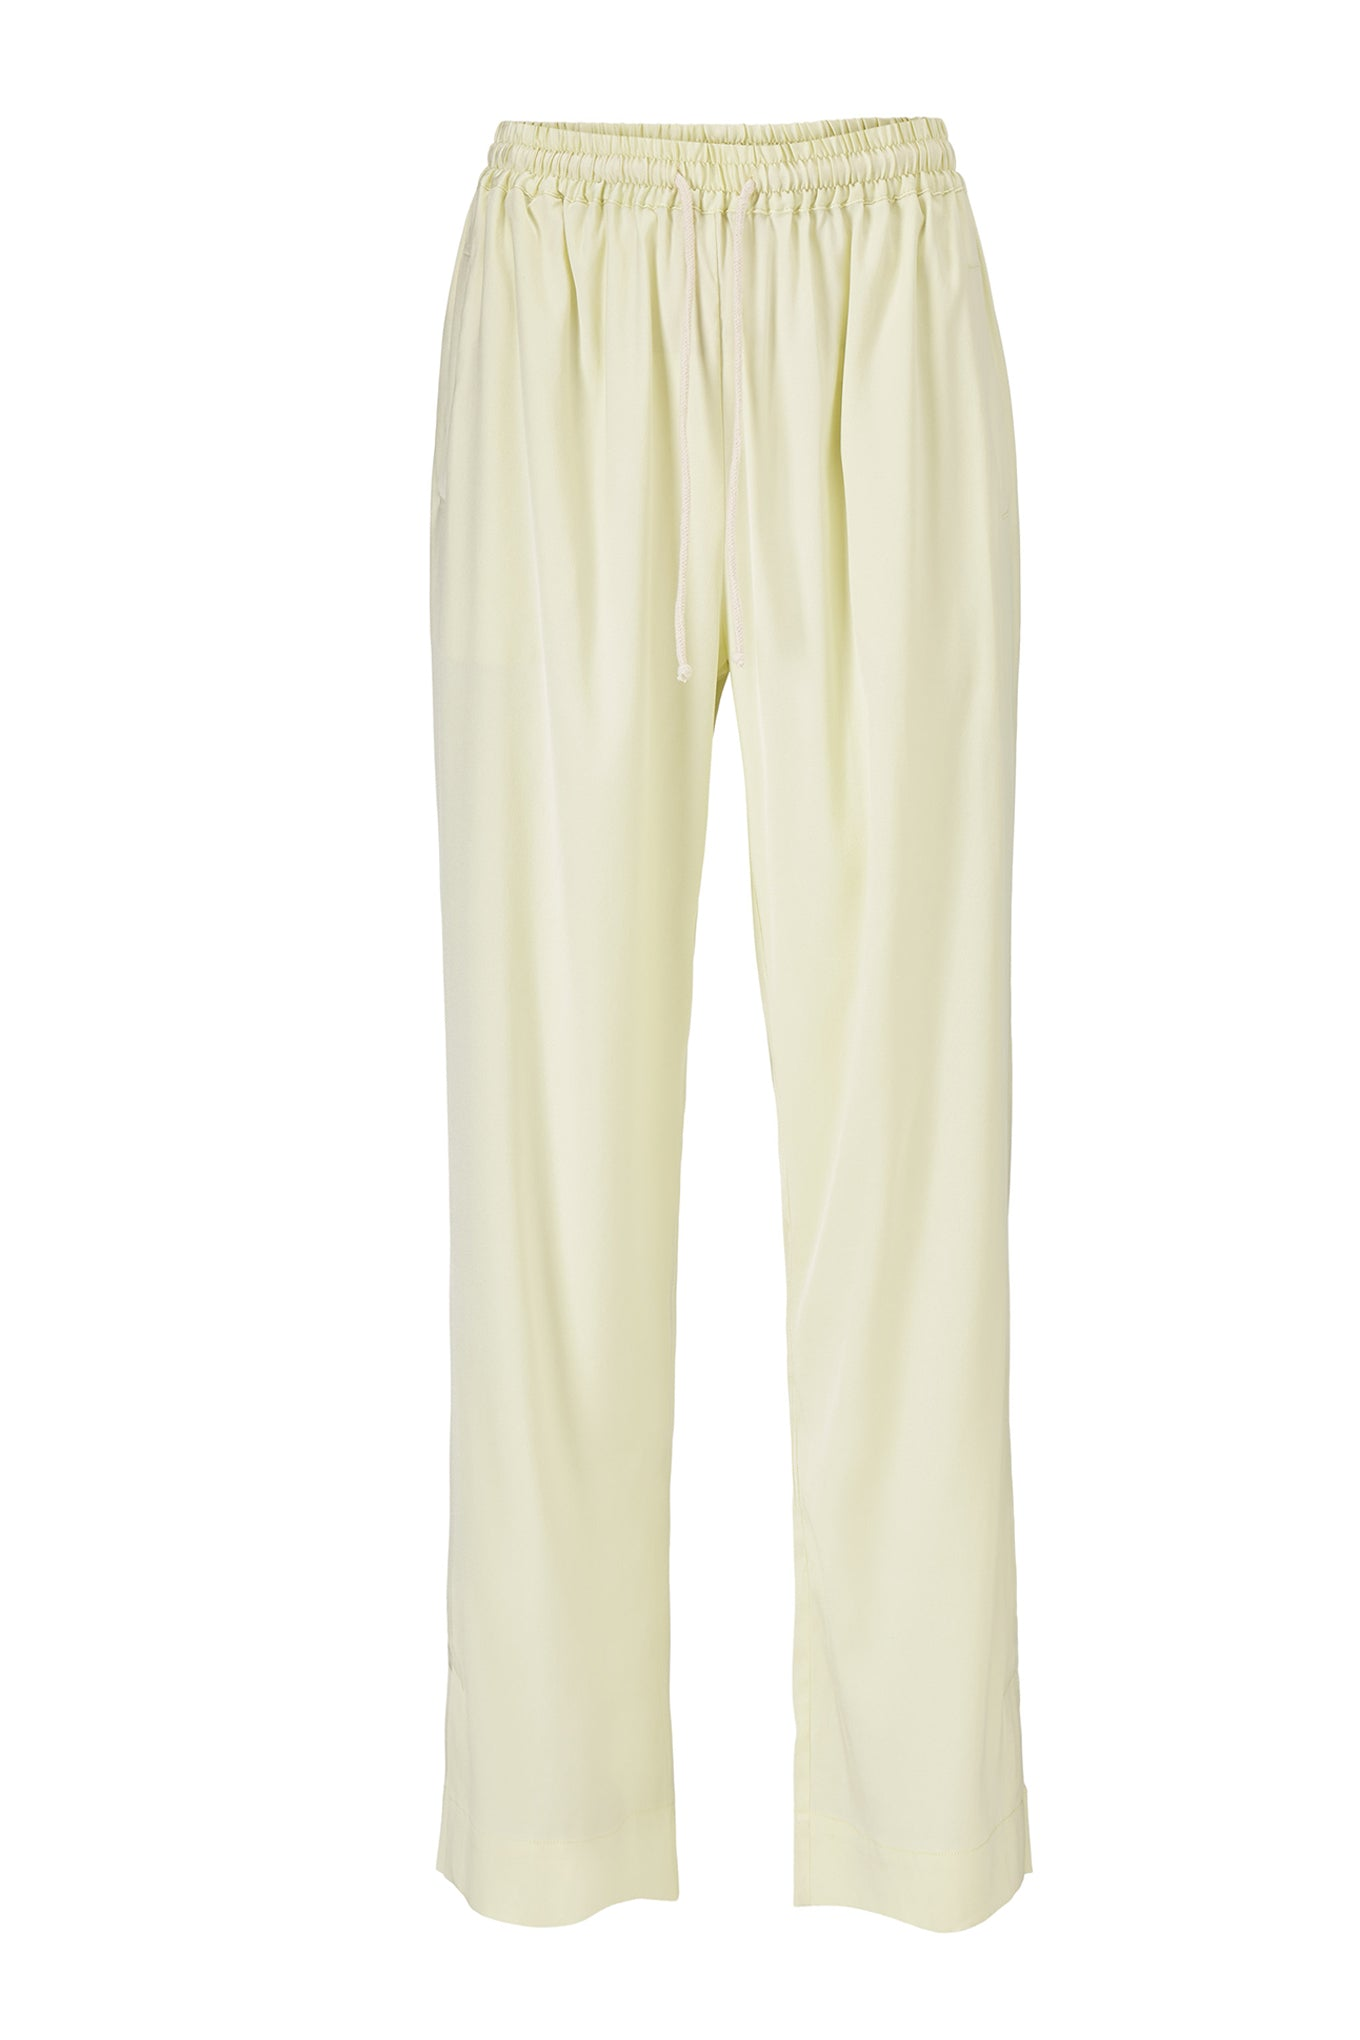 Eli Slit Pants - Lemon - Silk/Spandex Twill